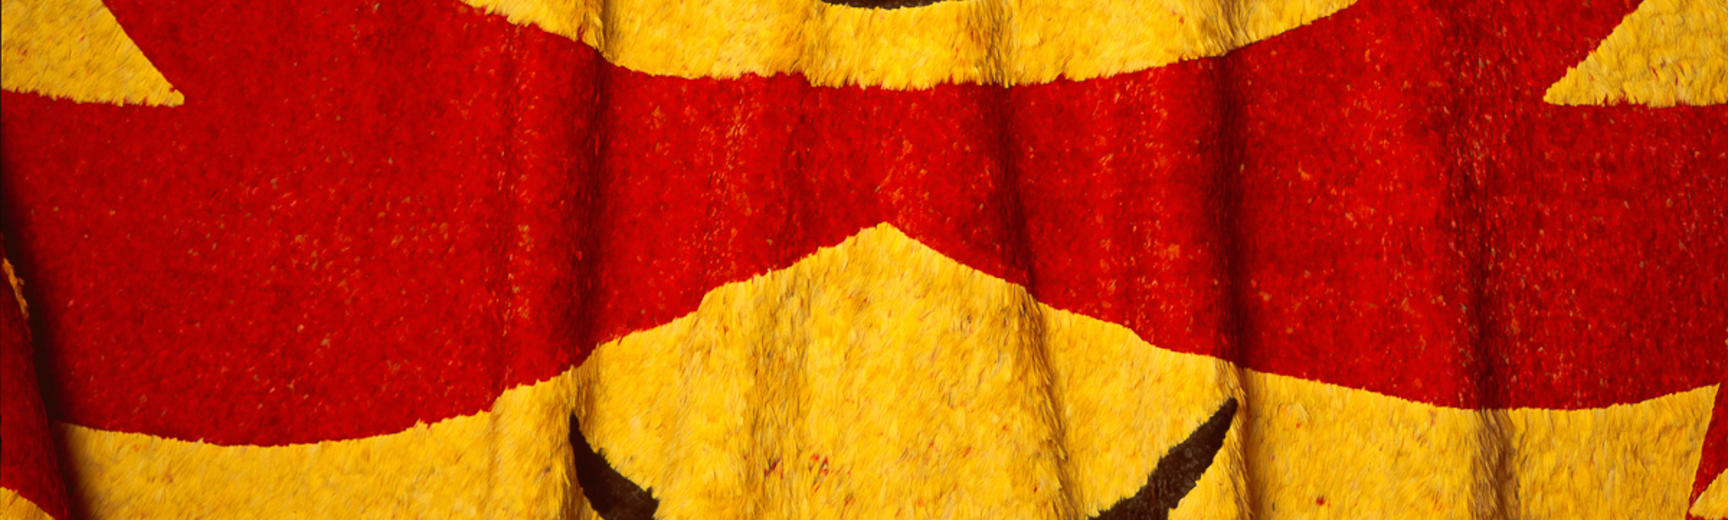 A red, yellow and black feather cloak with geometric designs.  Large yellow triangles have a small black smile shape in  the centre and are outlined in red.